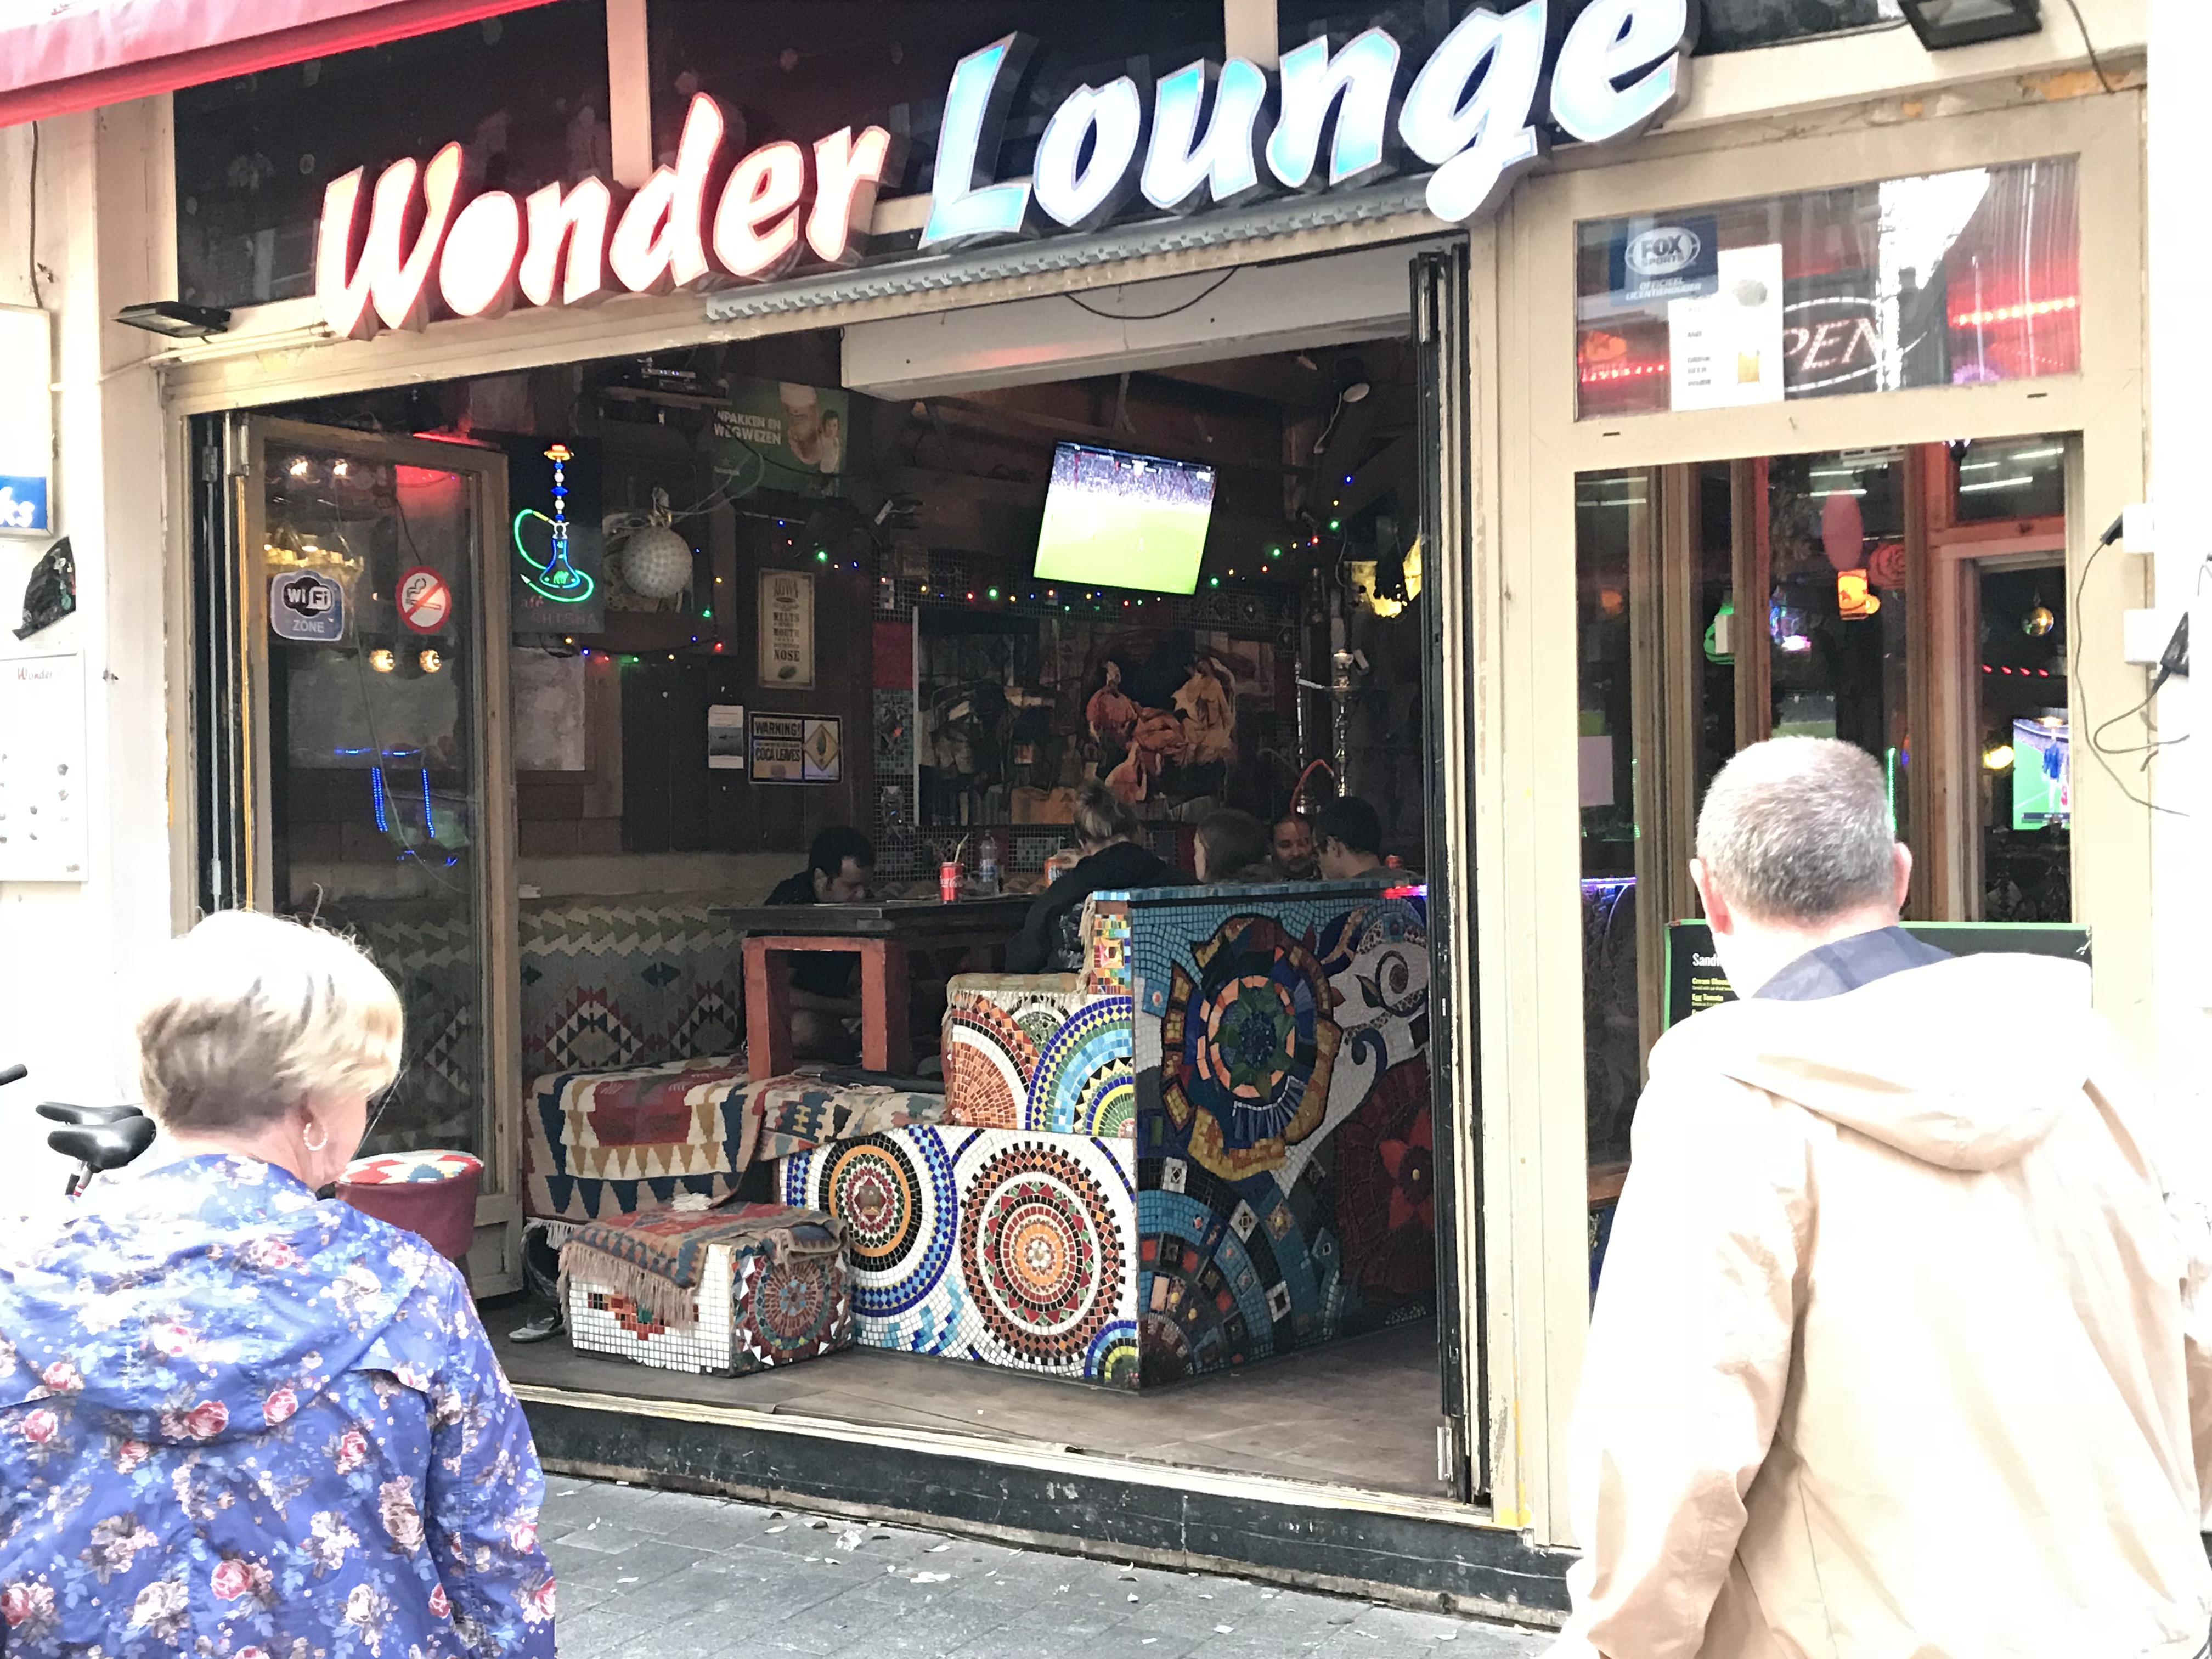 Wonder ber & Wonder Lounge